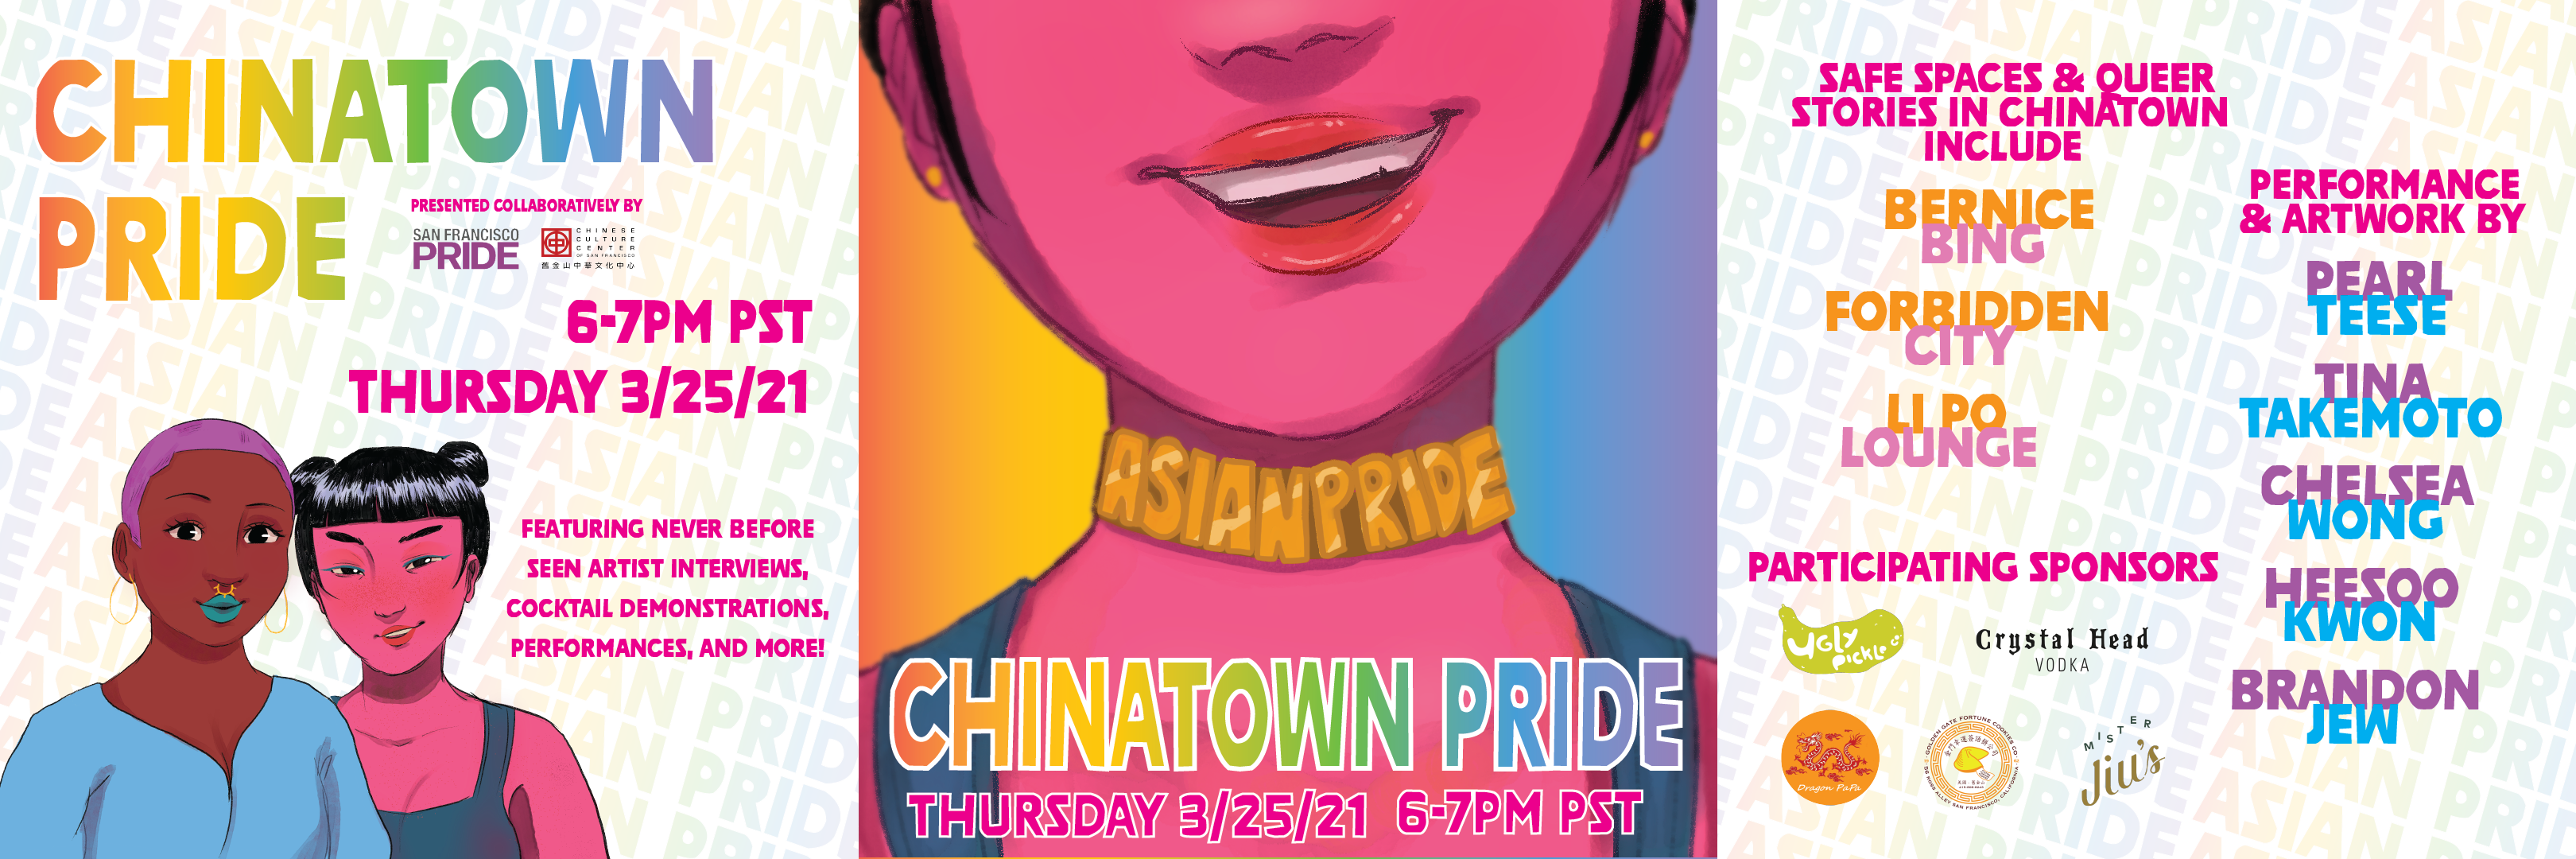 a series of images showing the date and time of chinatown pride, along with performer and sponsor information, Event Graphics for Chinatown Pride from artist Cyan San San Chang